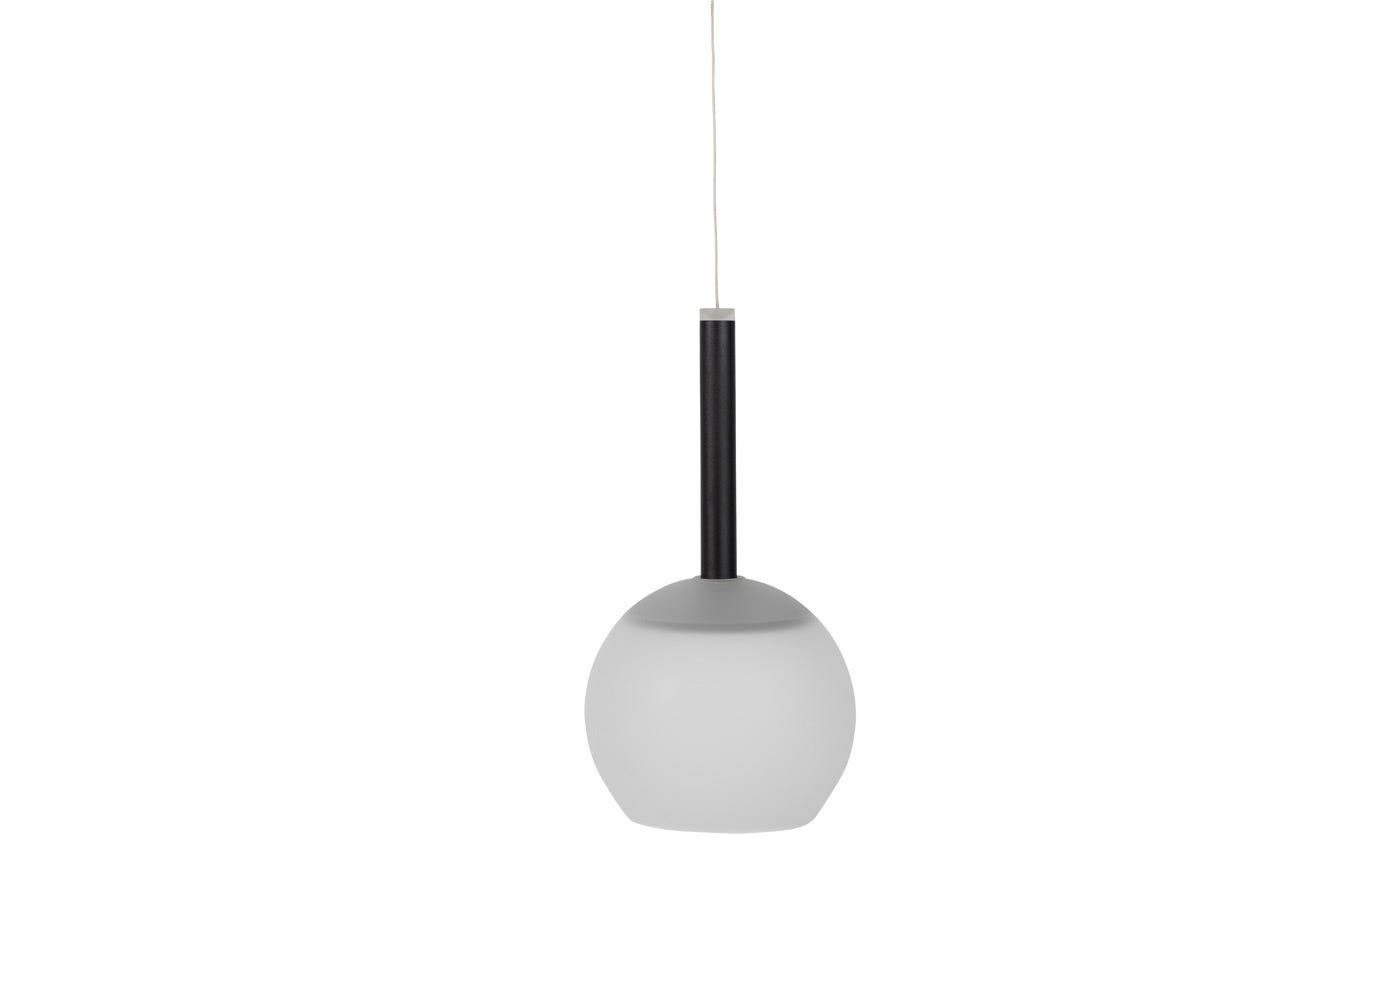 Frosted glass shade with disc long LED pendant in black off (please note the pendant is sold separately).